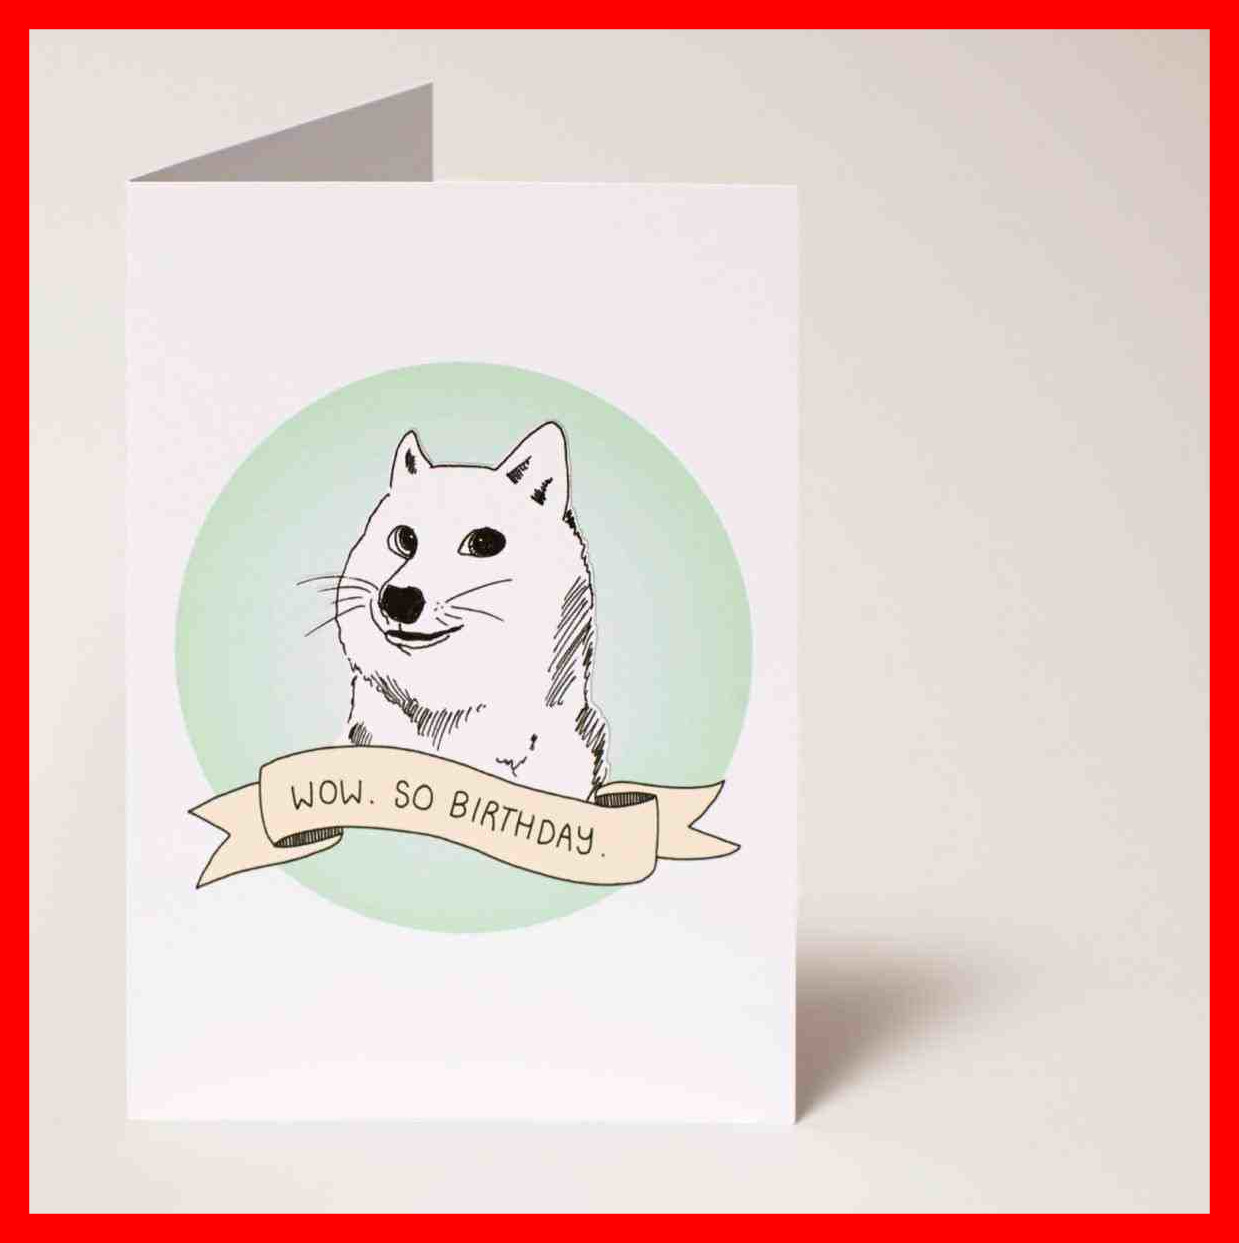 dog birthday card sayings ; shocking-dog-birthday-card-sayings-info-pics-of-funny-ideas-and-concept